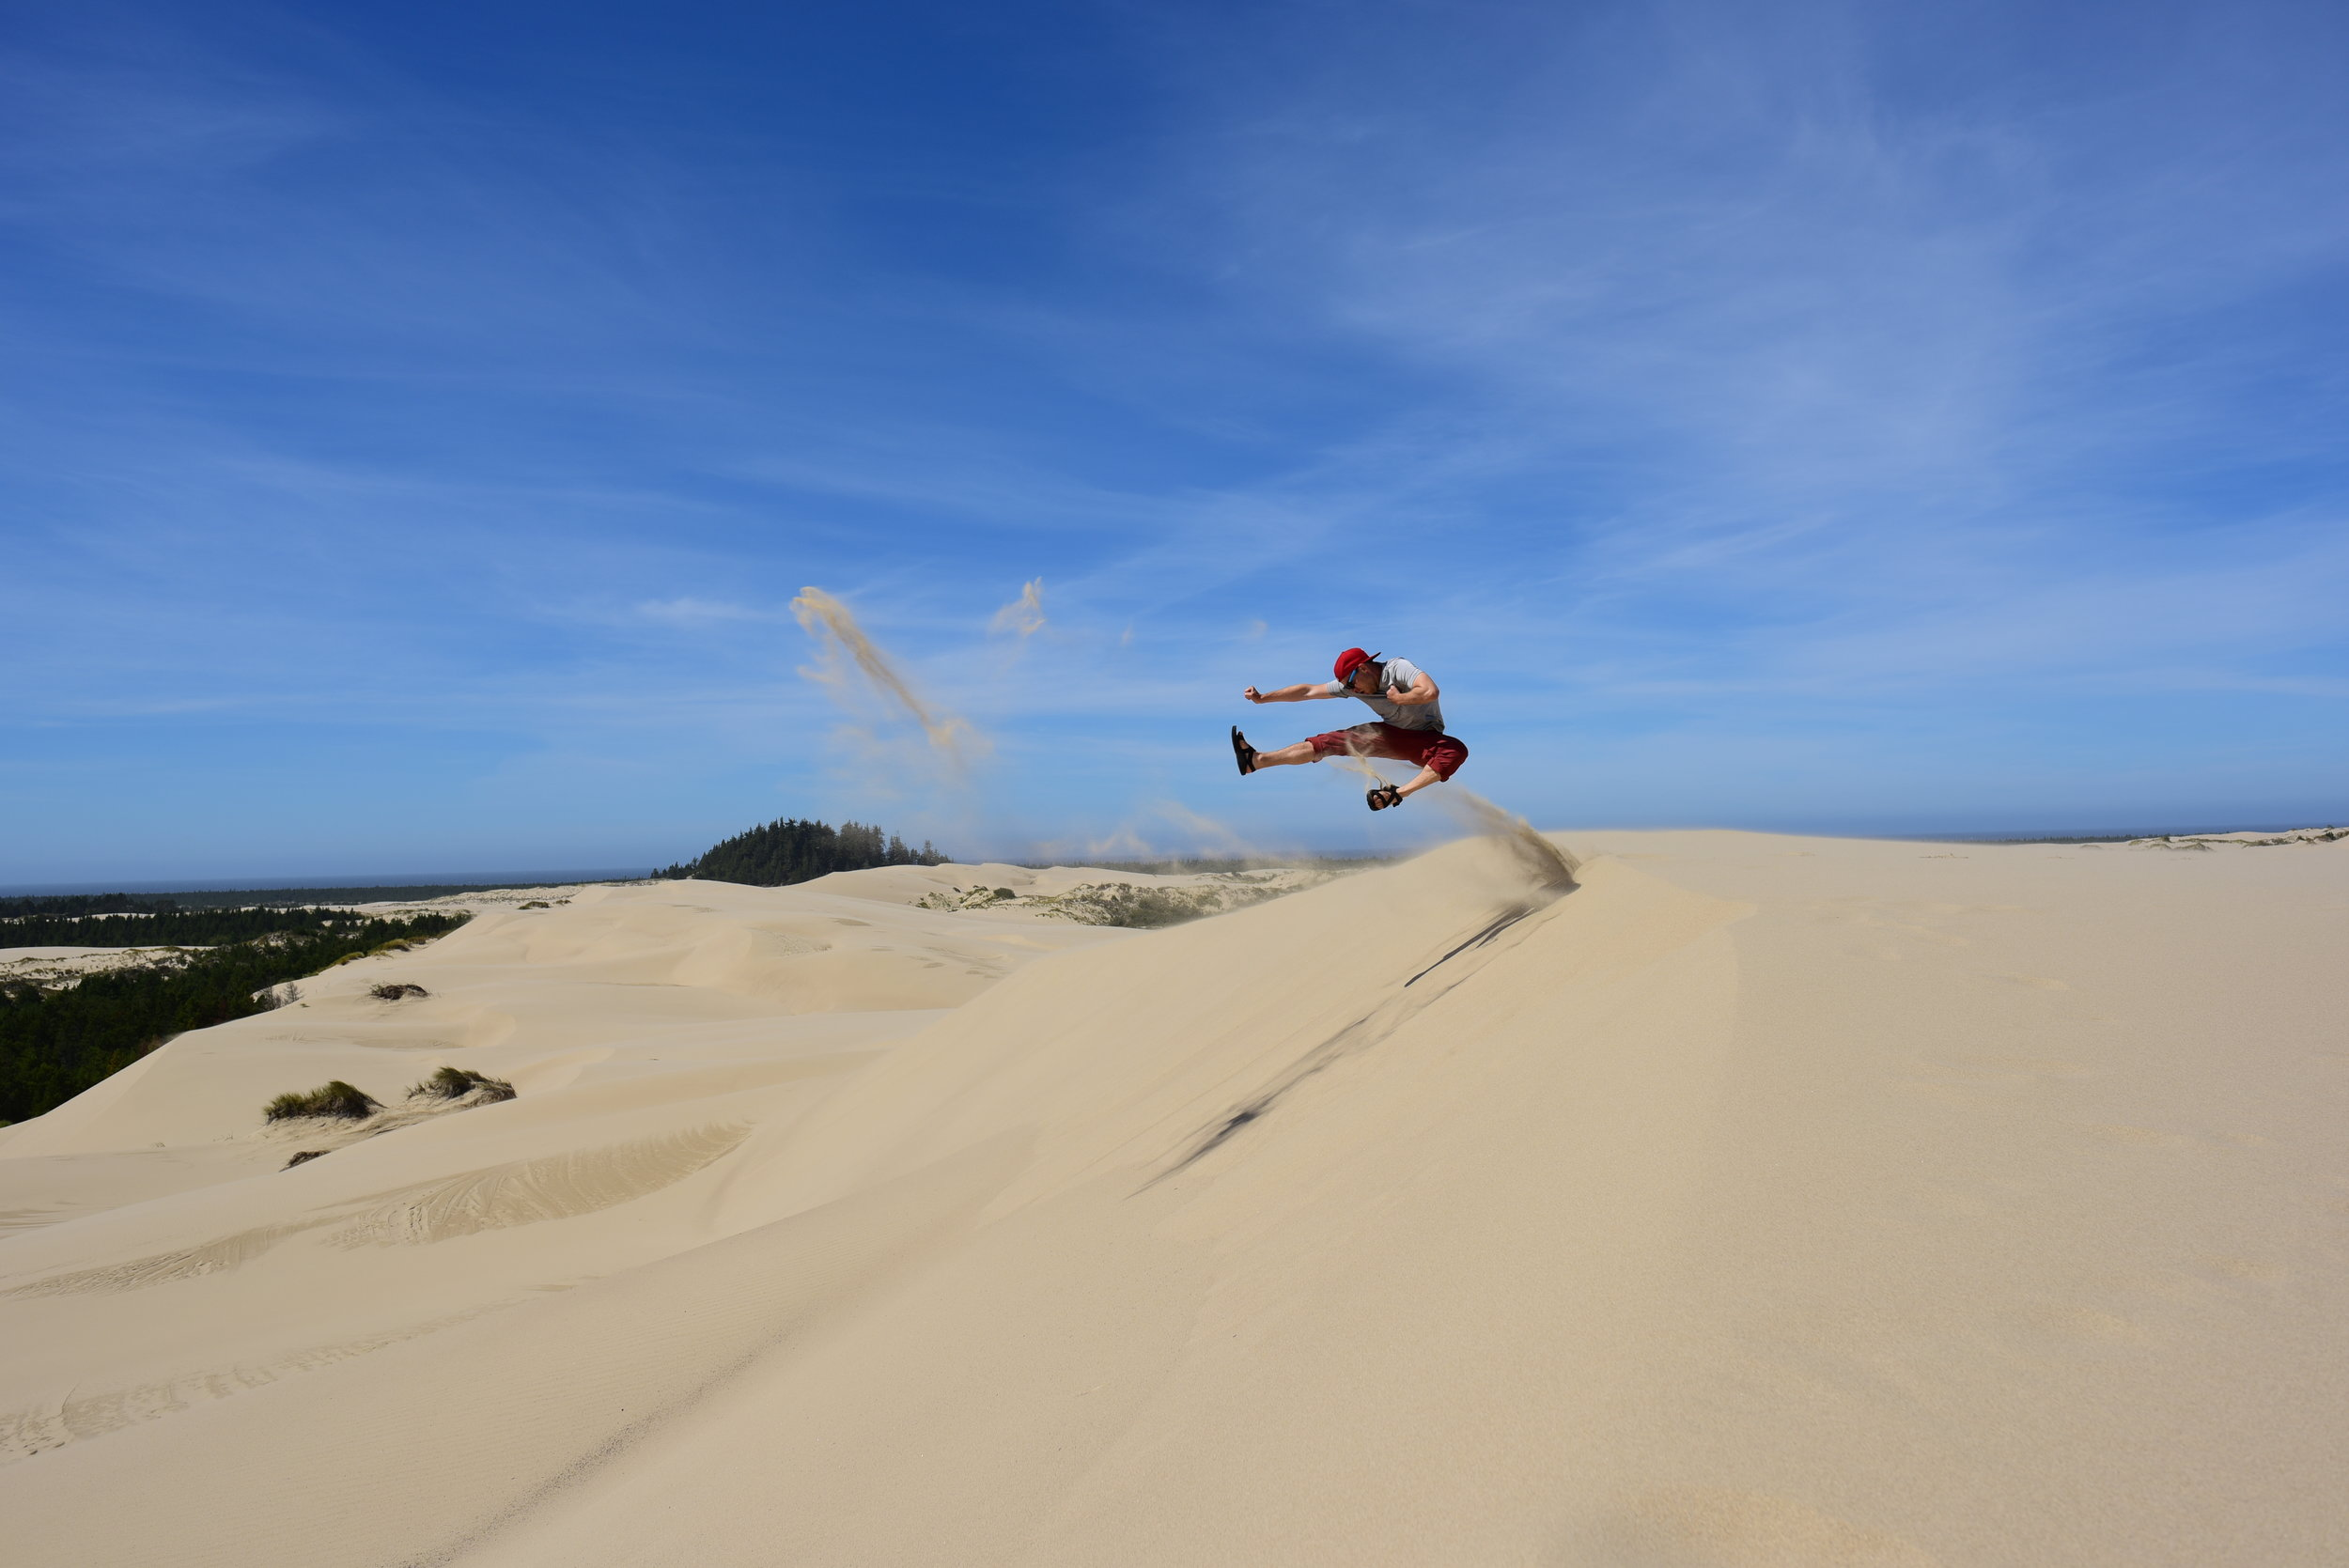 Karate moves on the Oregon Sand Dunes